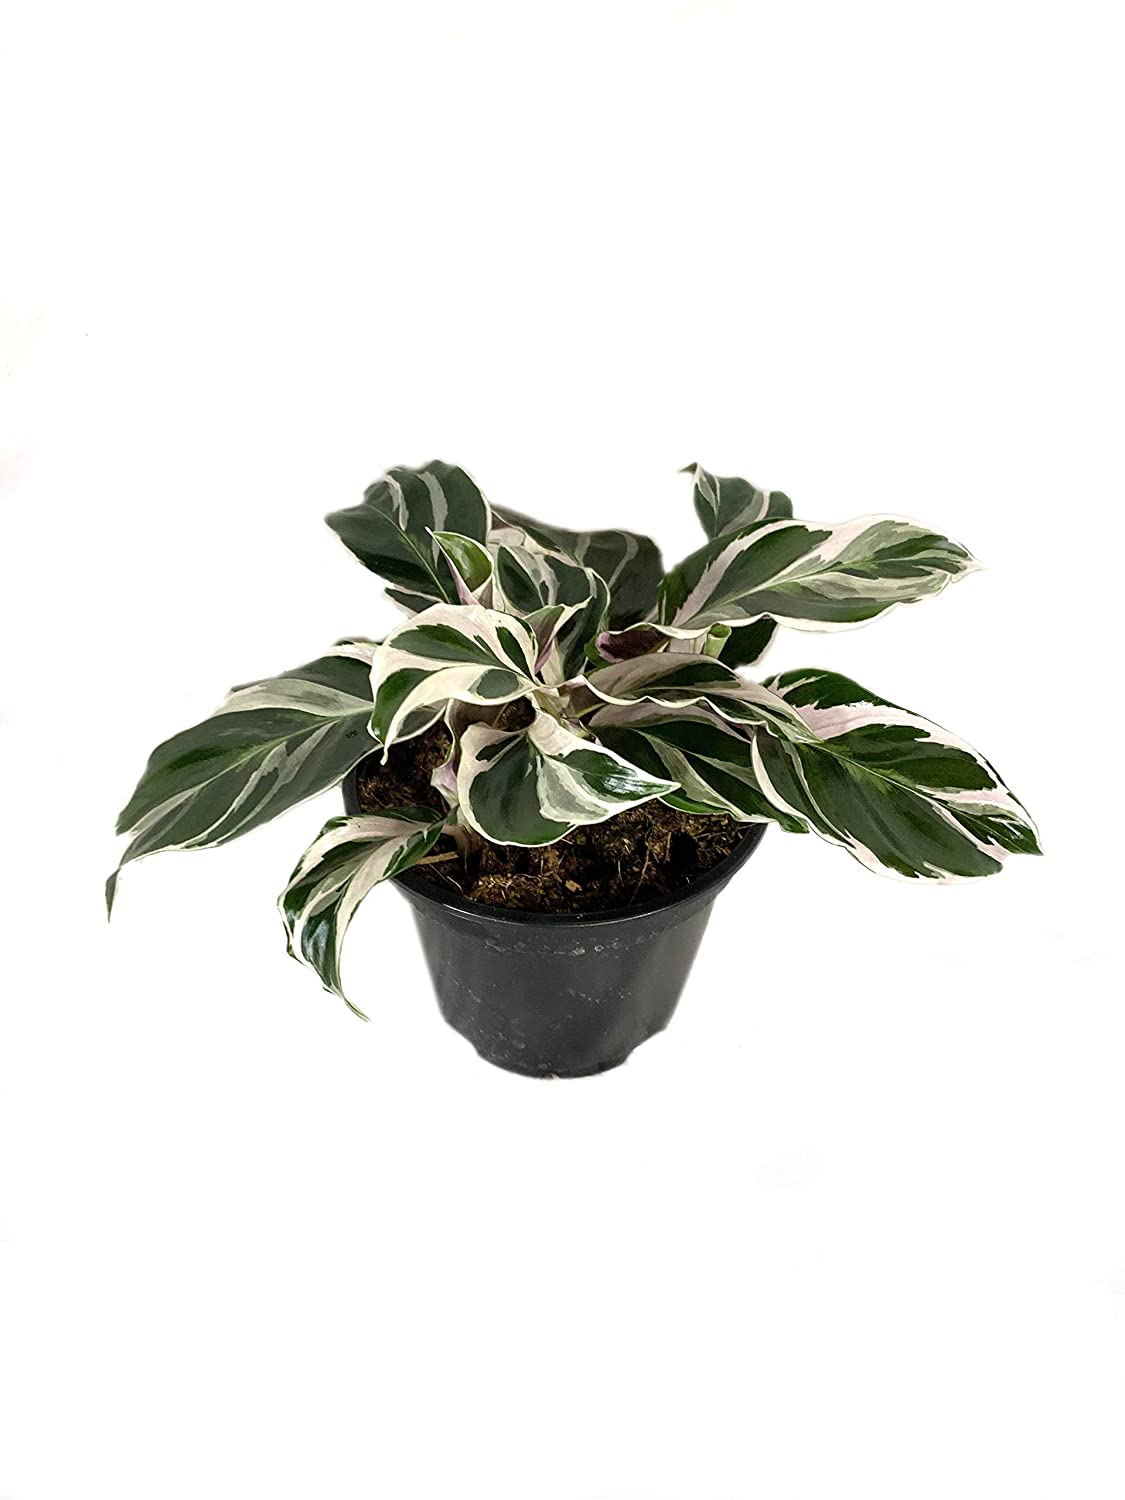 Fusion White Peacock Plant - 3 Live Plants in 4 Inch Pots - Calathea Hybrid - Beautiful Easy Care Indoor Tropical Houseplant